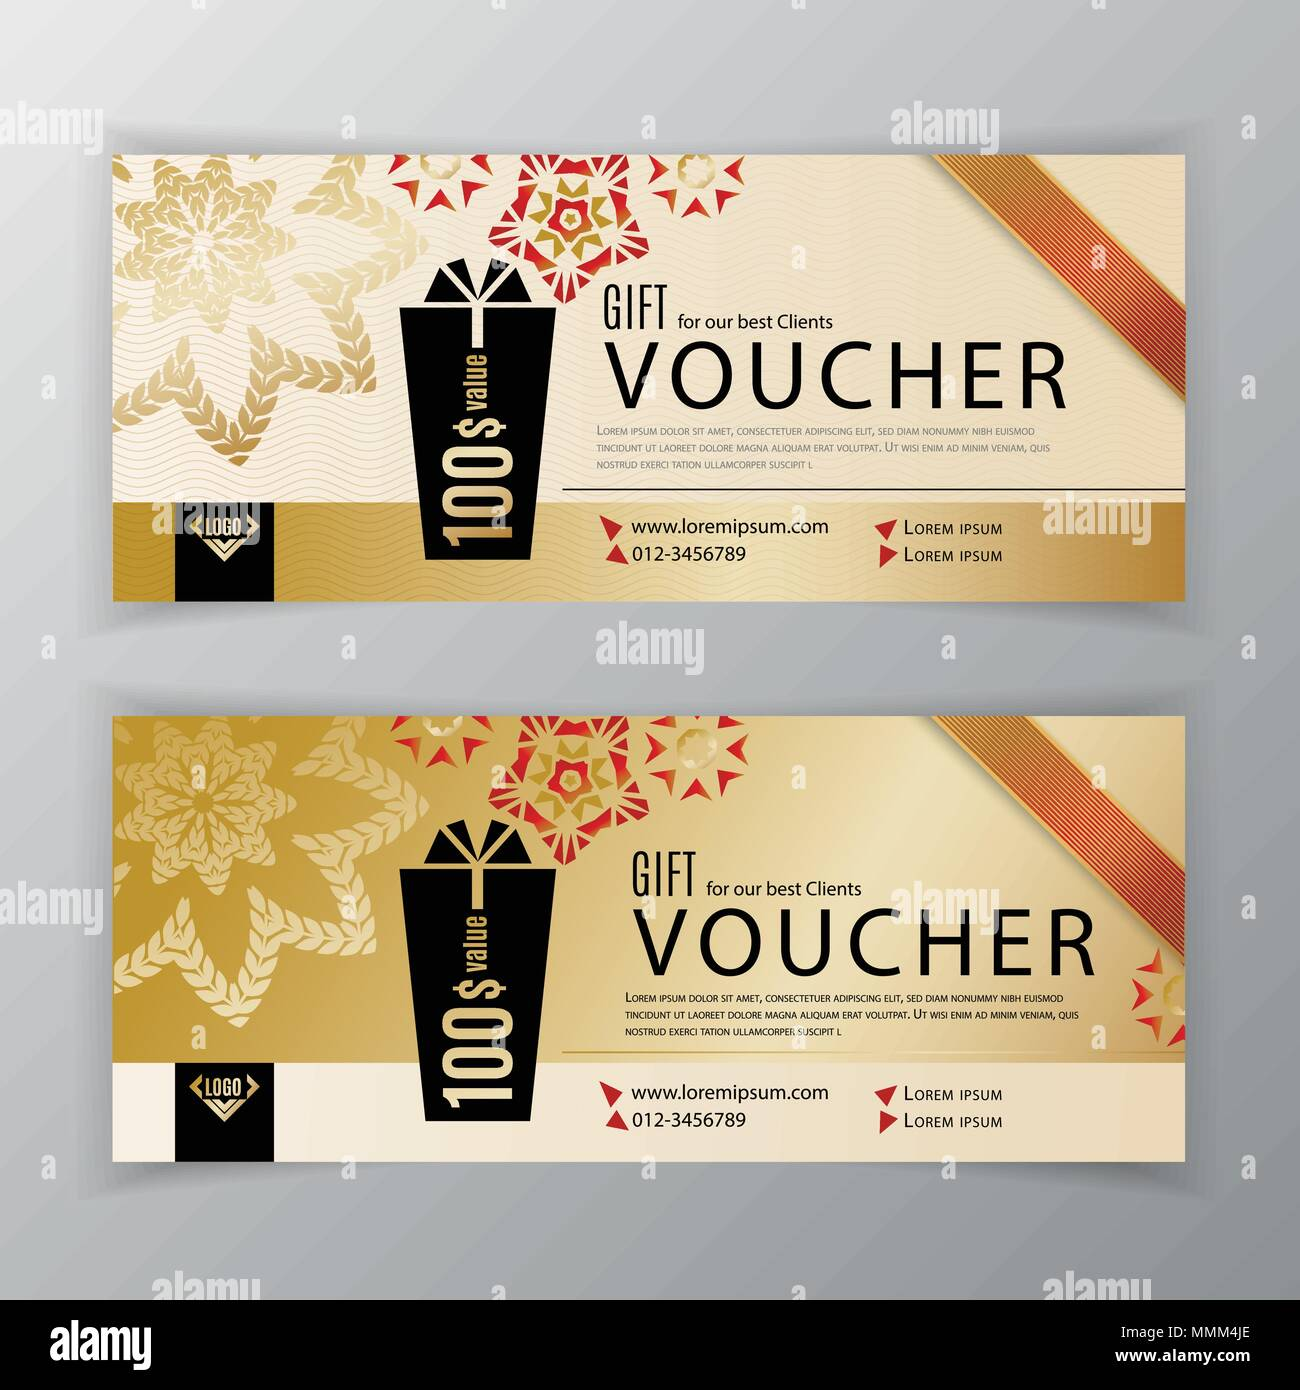 Gift voucher template universal flyer for business clean vector gift voucher template universal flyer for business clean vector design black gold design elements clean design for department stores business ab cheaphphosting Gallery